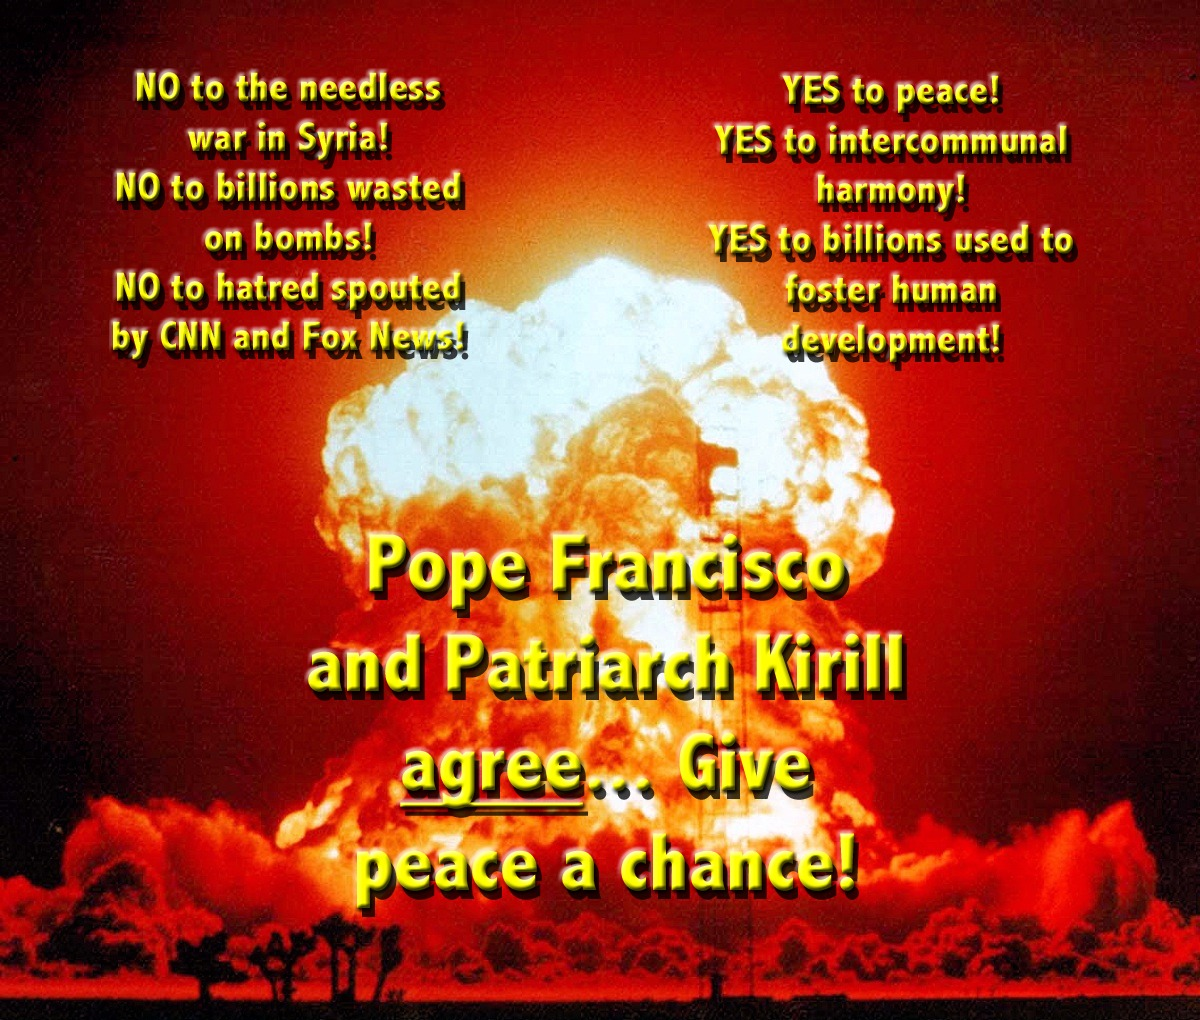 00 give peace a chance francisco and kirill 161115